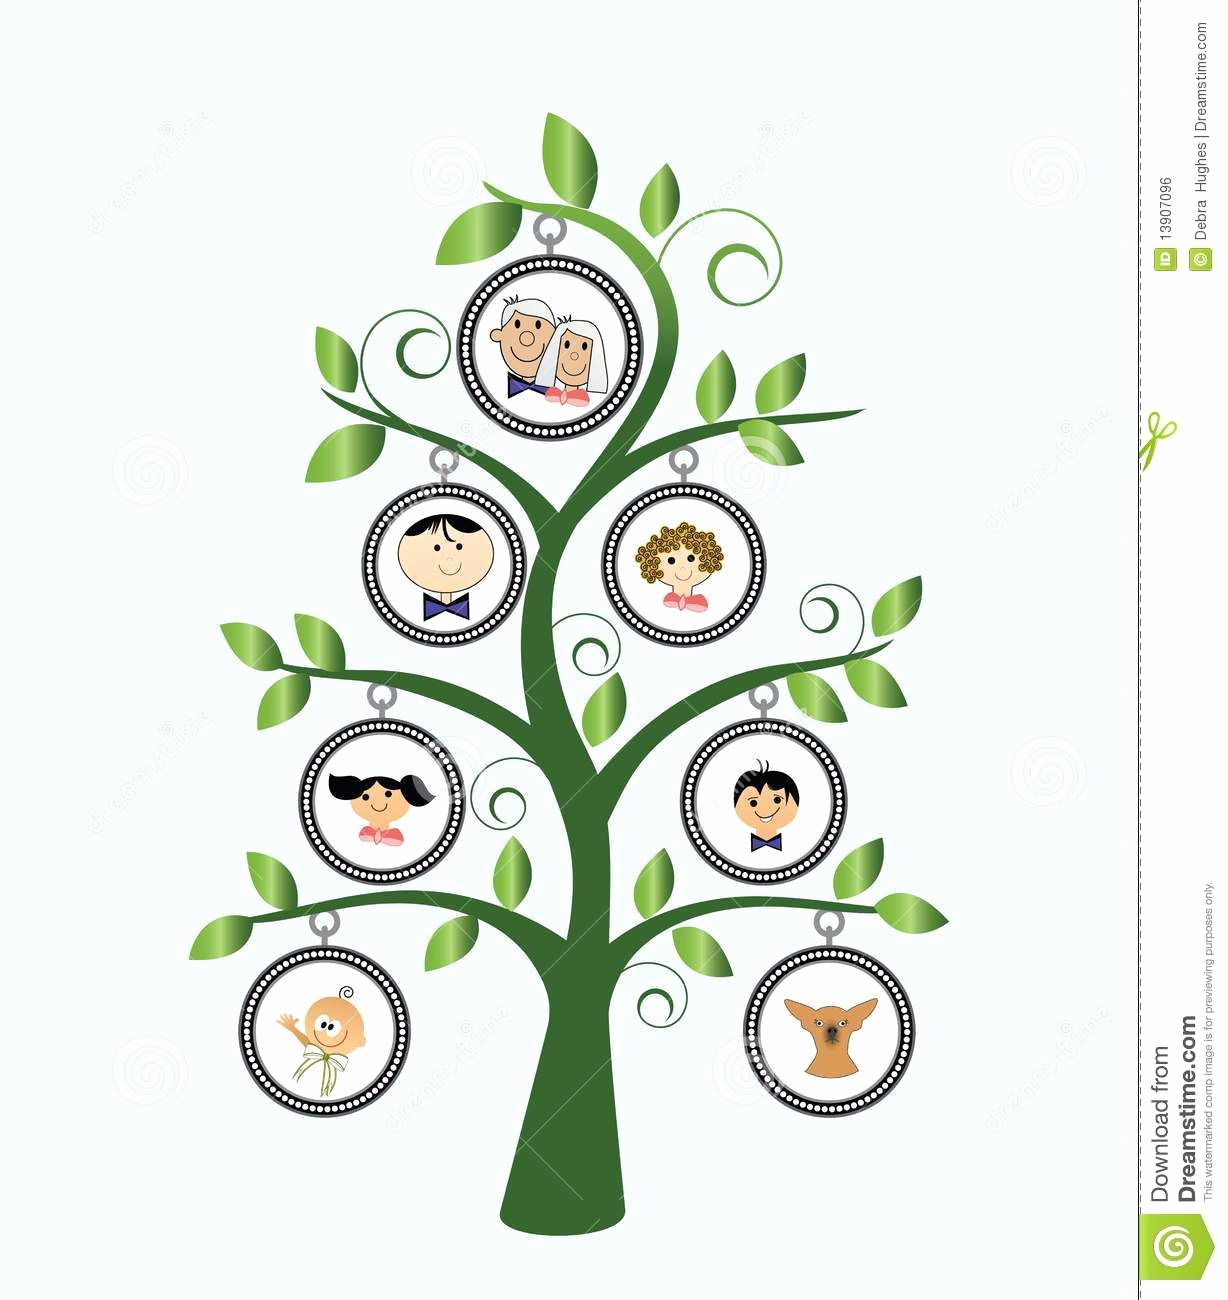 Family Tree Template Google Docs Elegant Family Tree Images Google Search Ffd Ideas